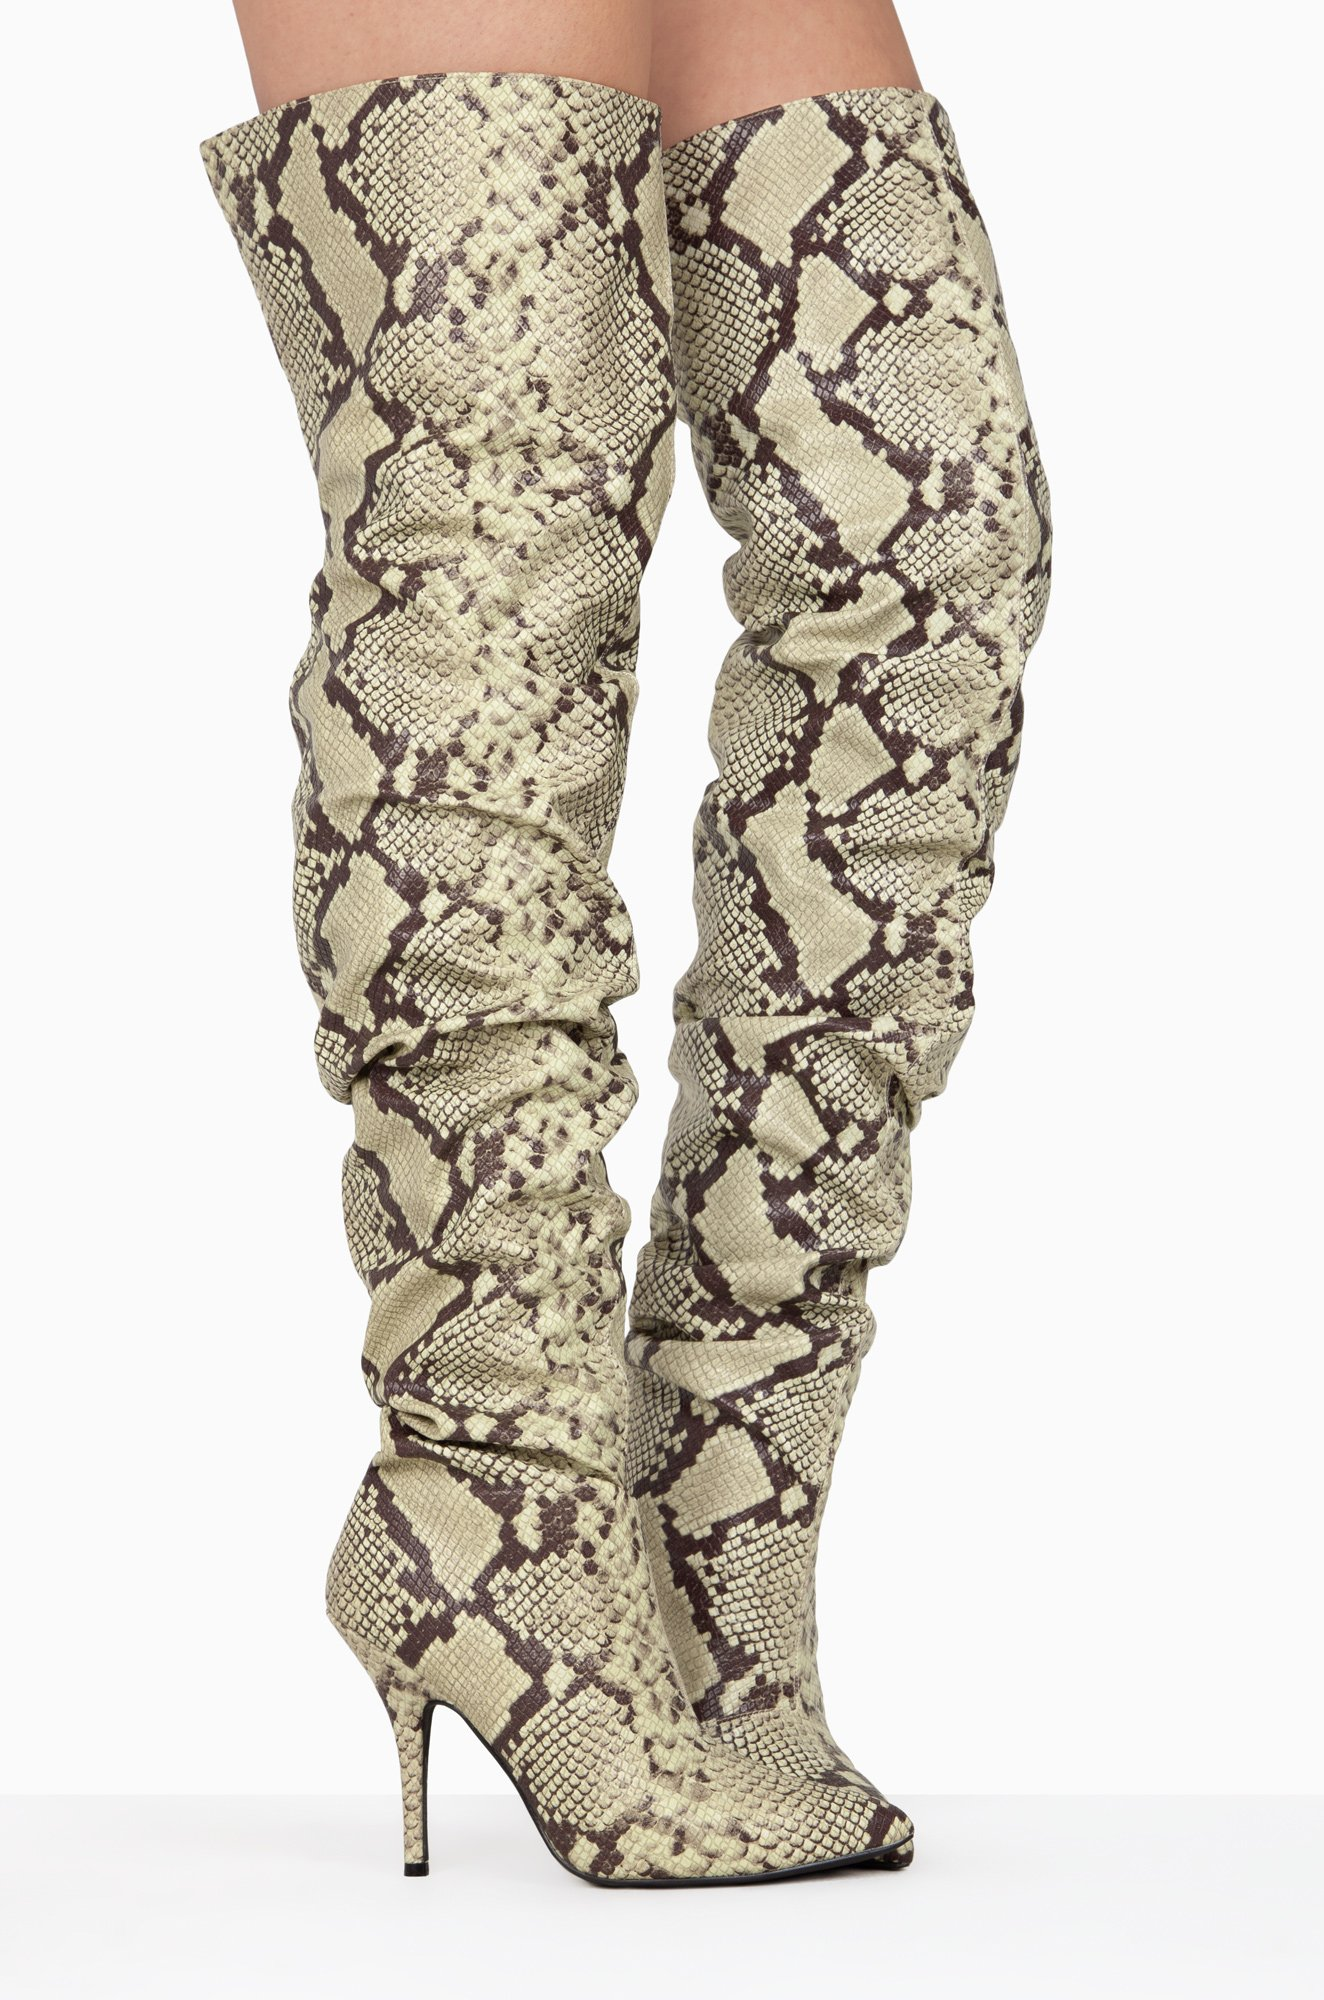 Cape-Robbin-Bown-Snake-Thigh-High-Slouch-Pointed-Toe-Over-The-Knee-Stiletto-Boot thumbnail 25